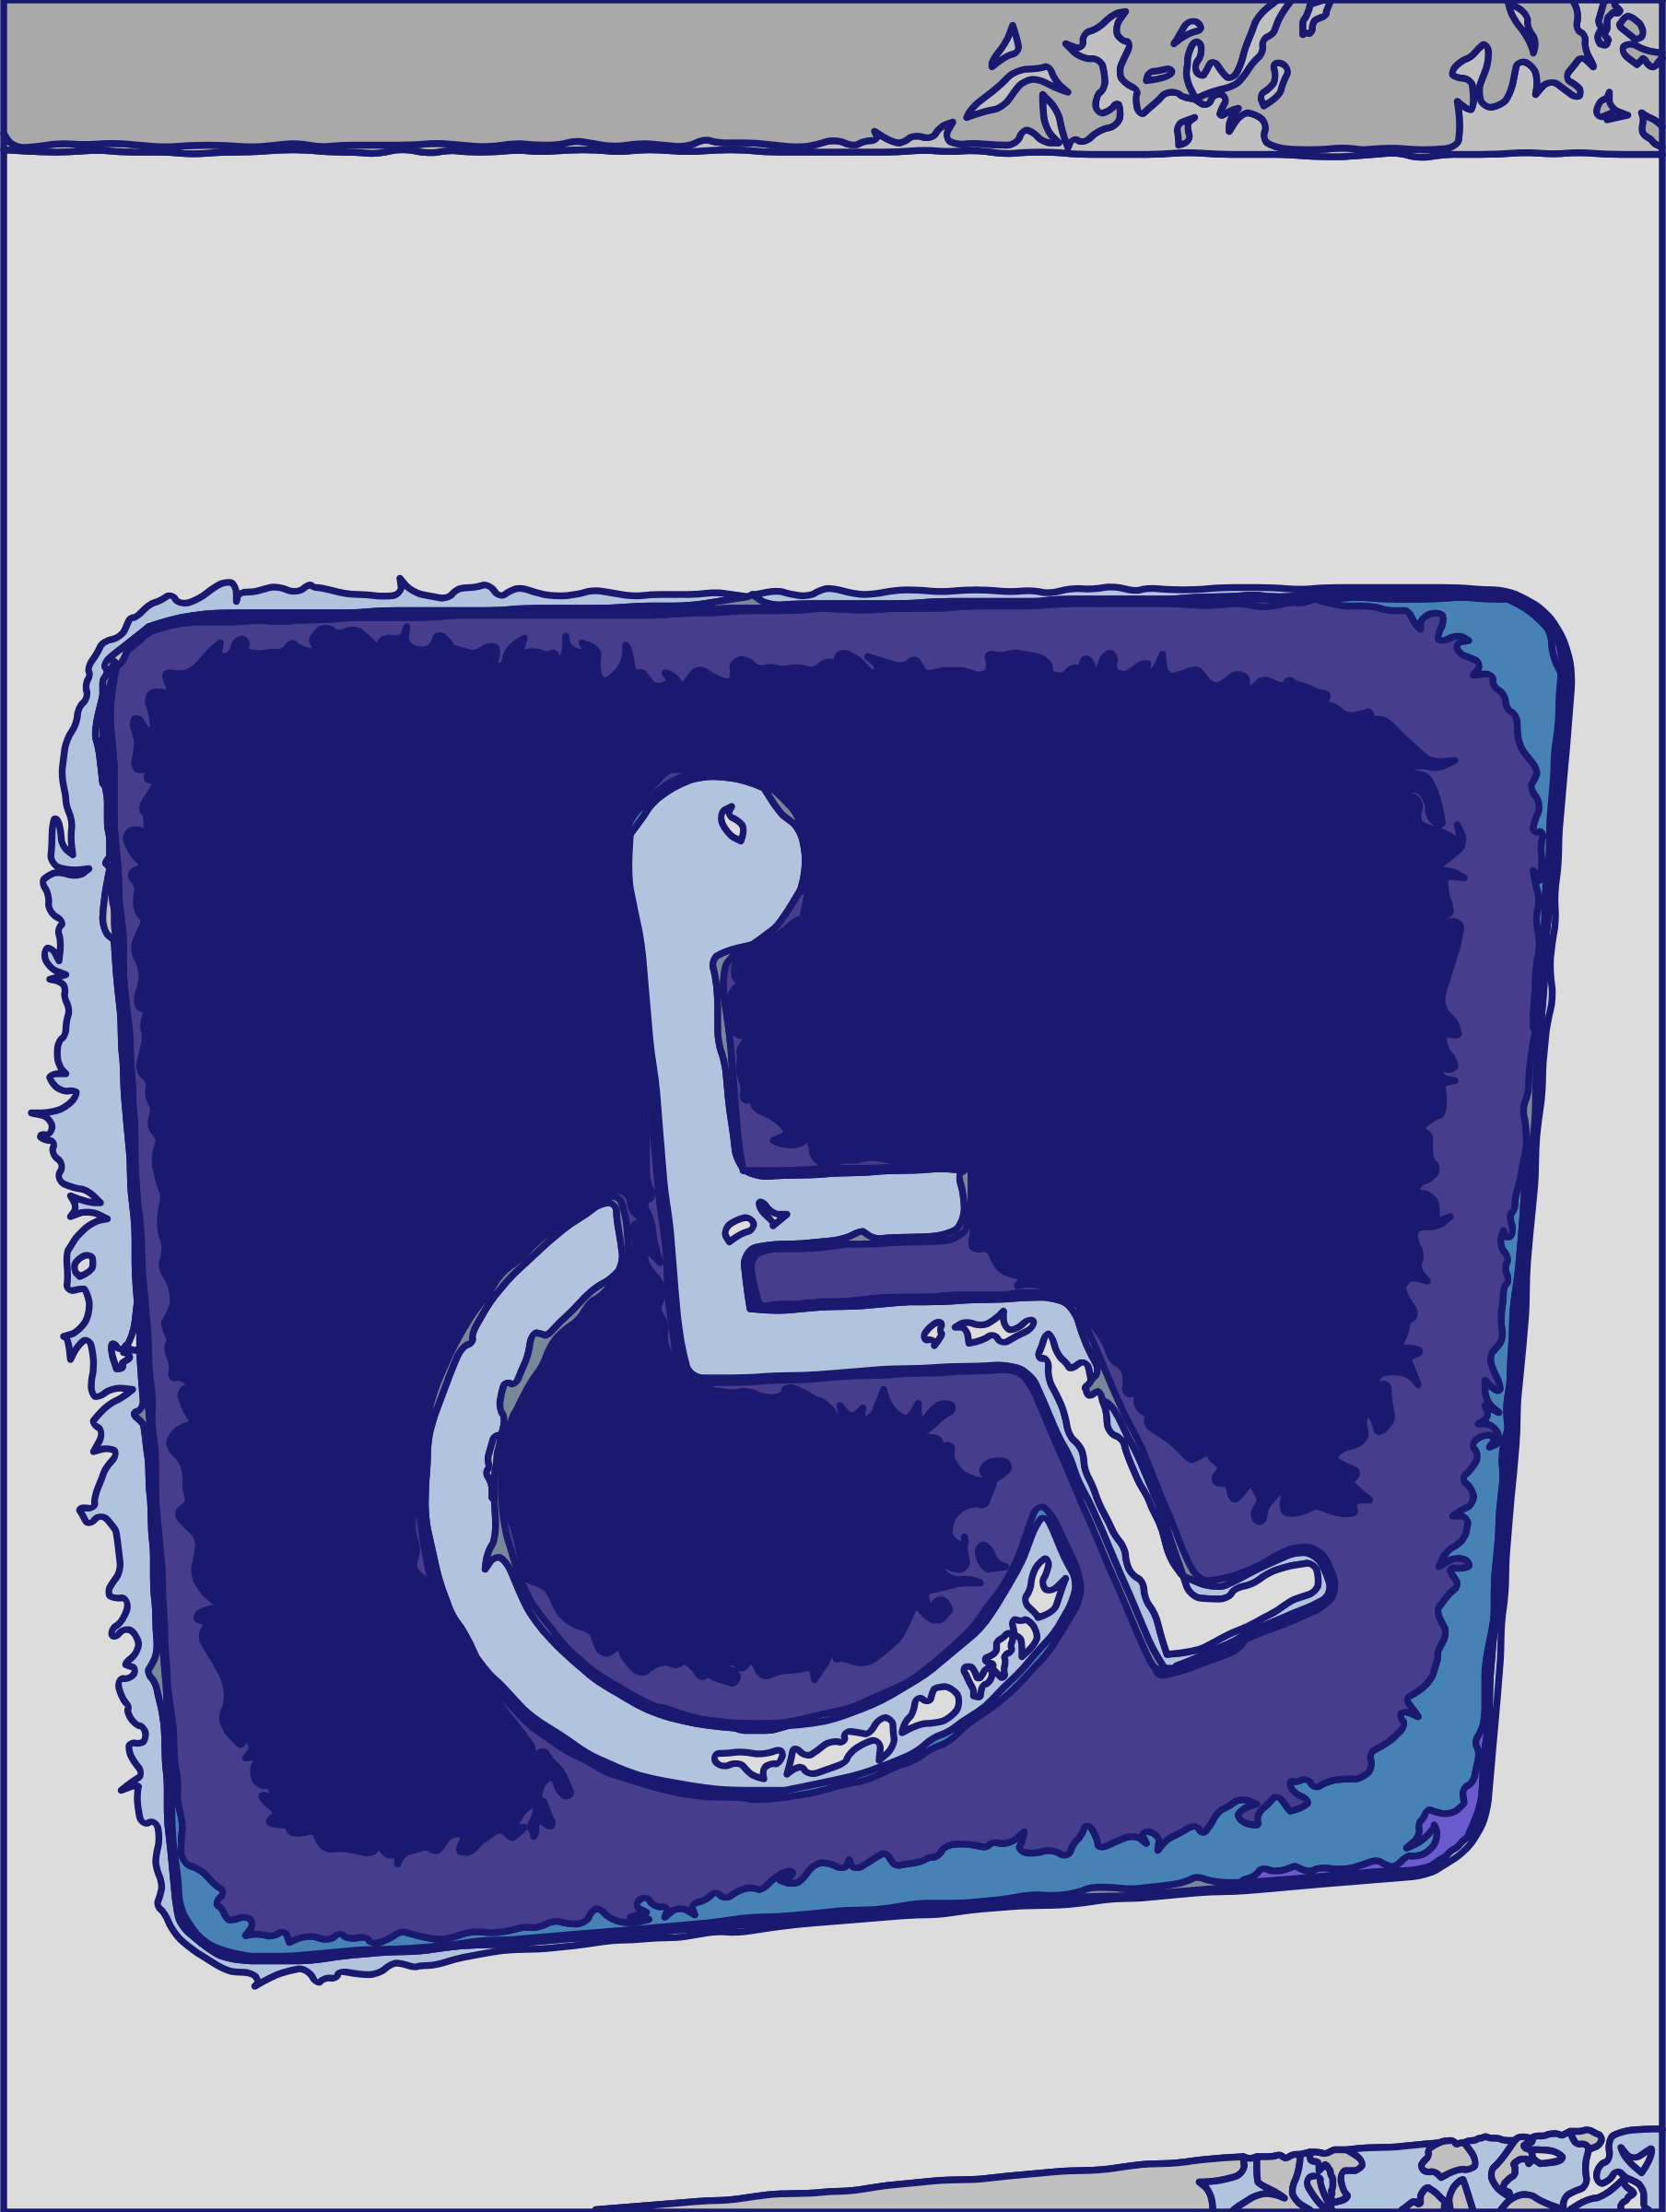 Funky Wheelchair Symbol by j4p4n